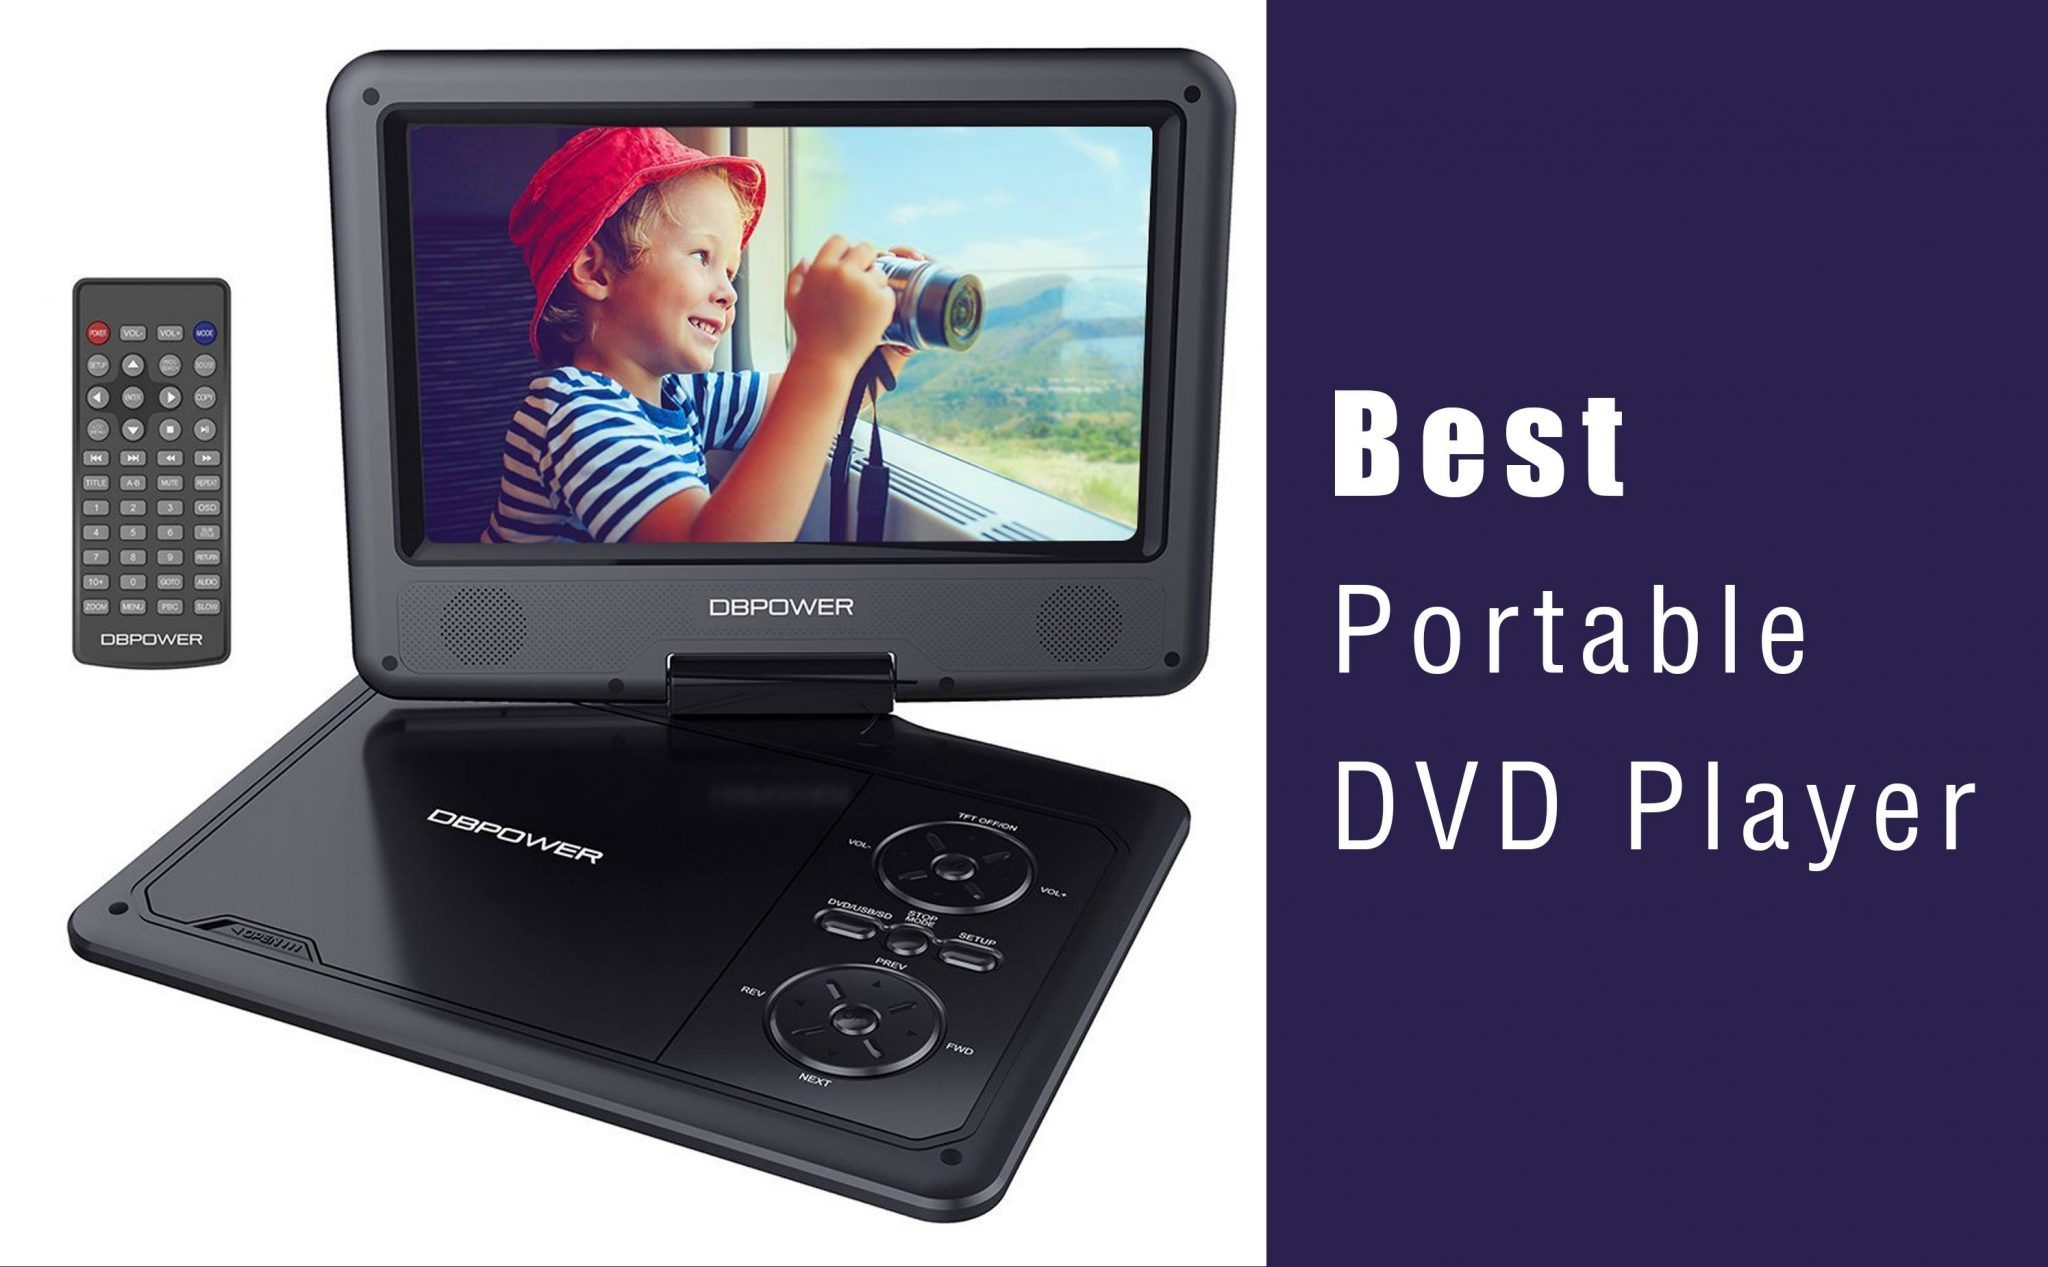 Best Portable DVD Player